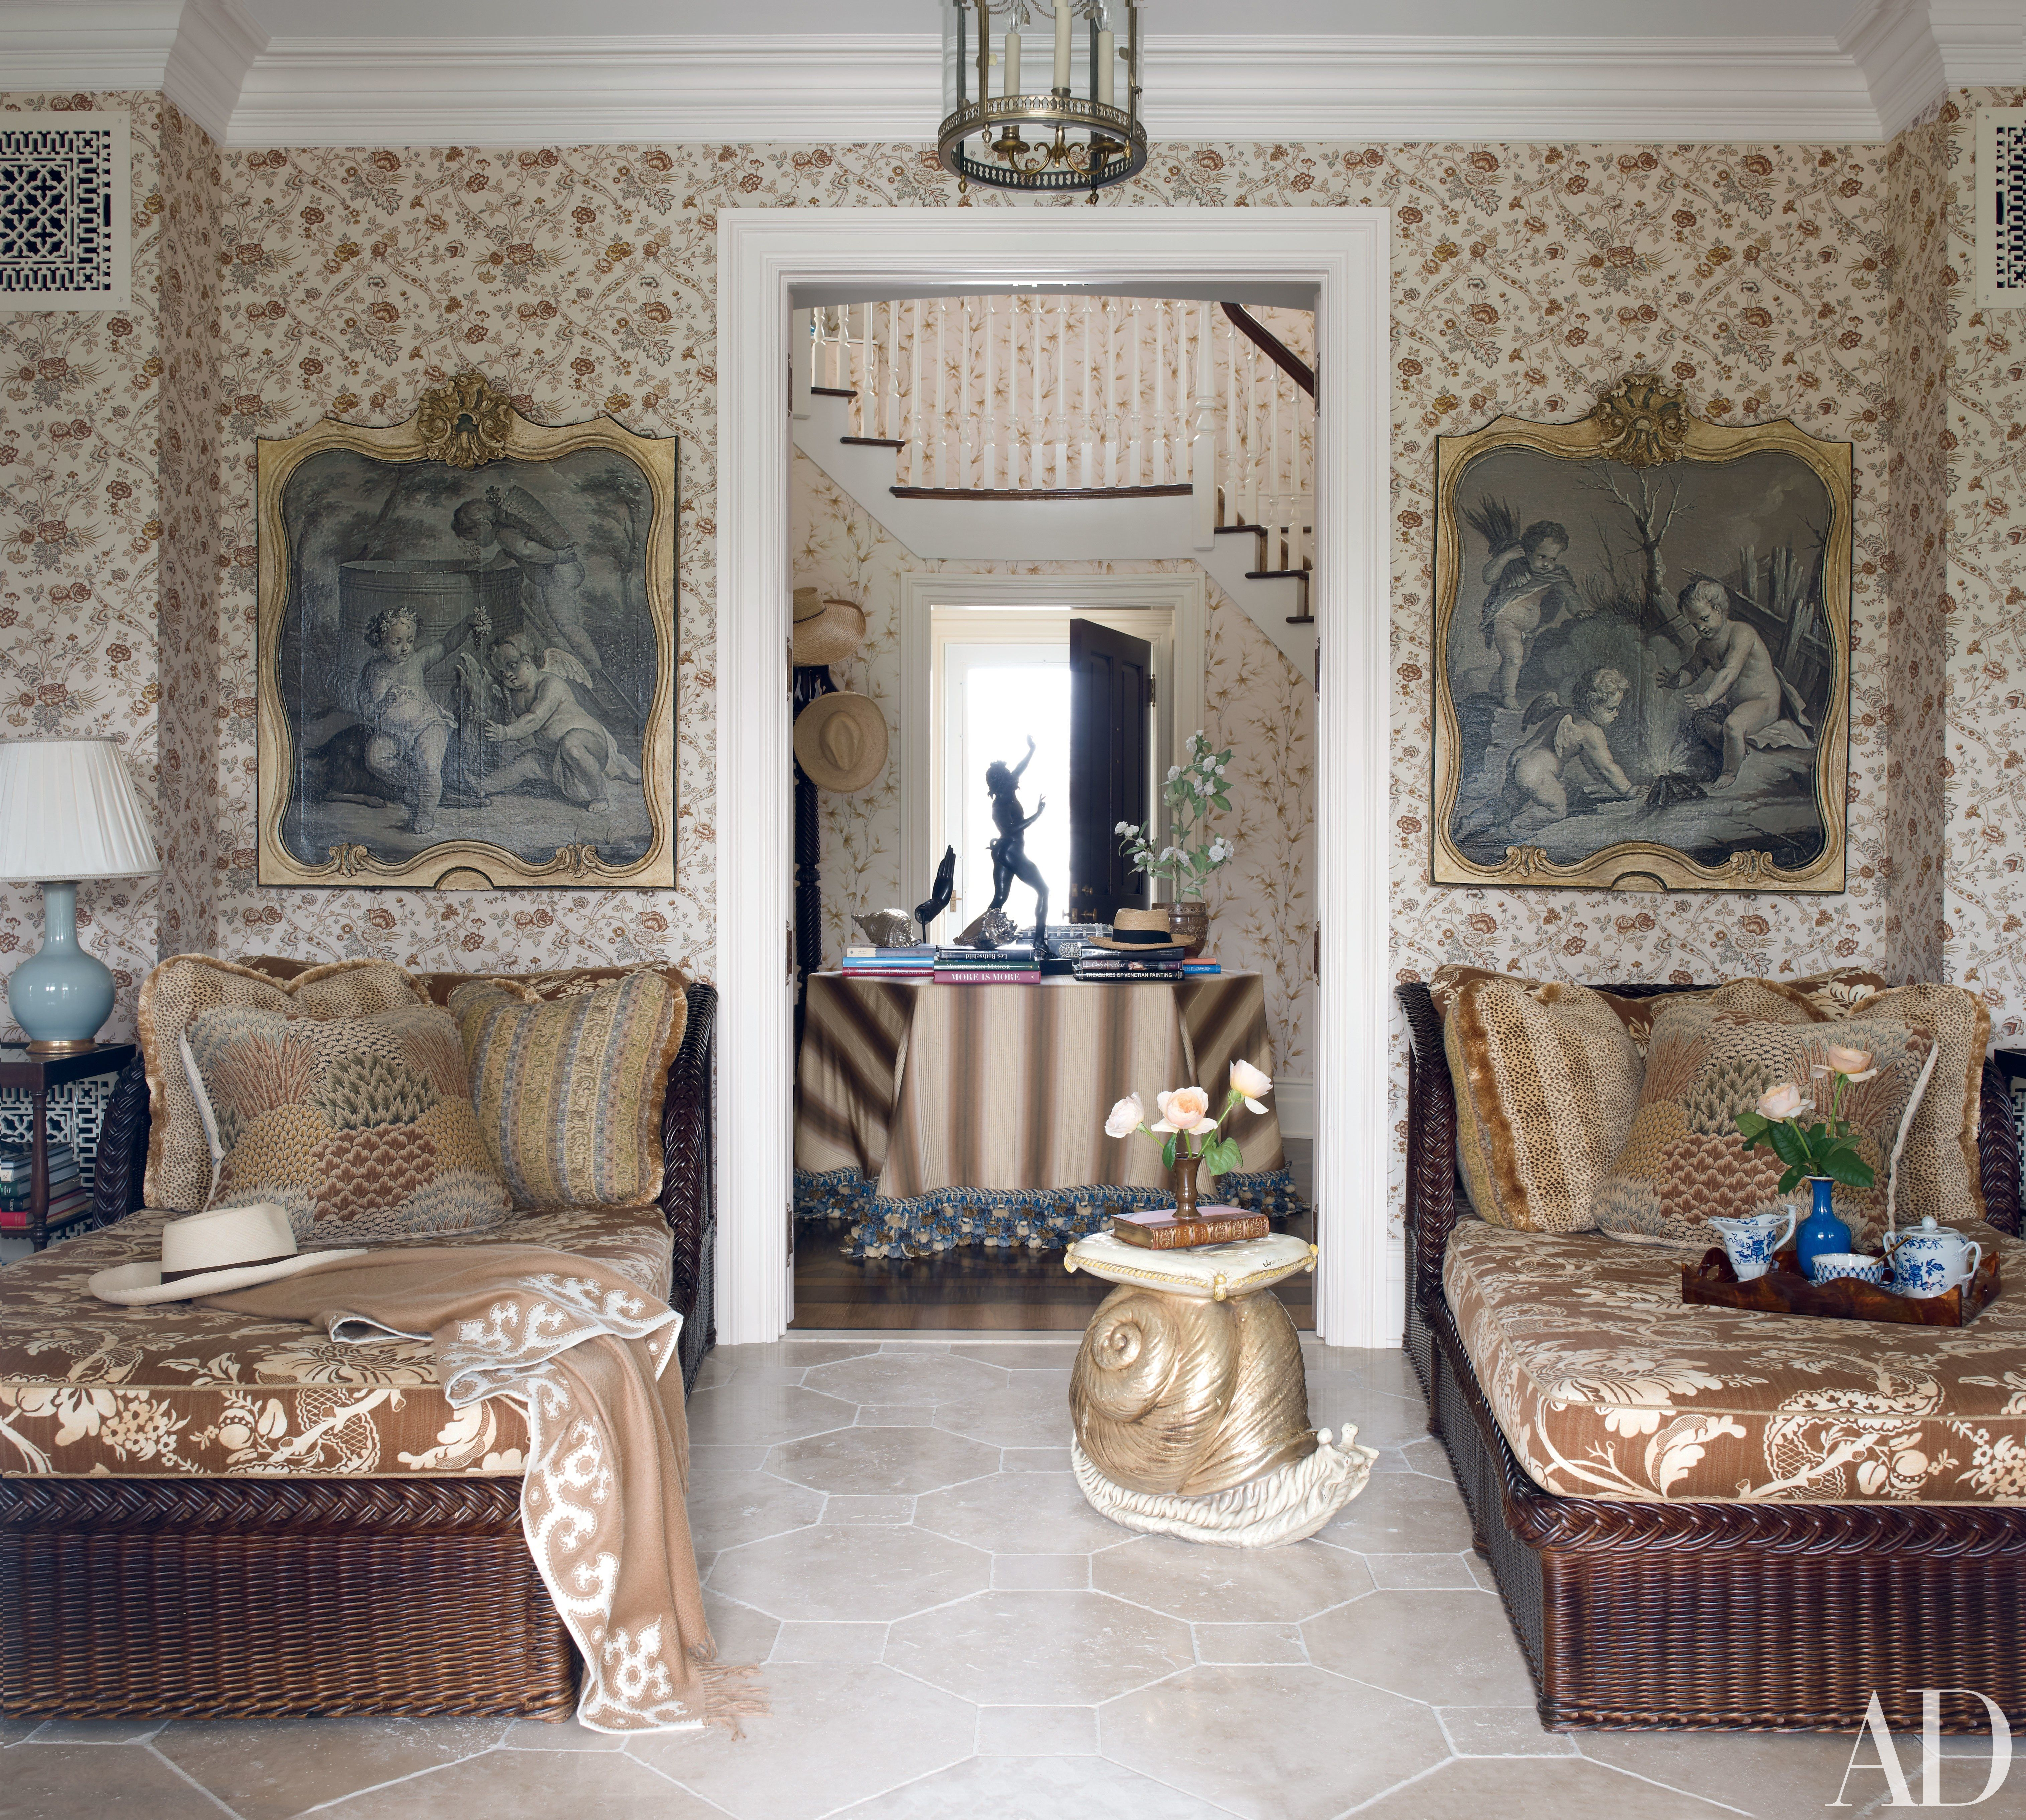 At decorator Alex Papachristidis's Bridgehampton, New York, home, a loggia's Cowtan & Tout wall covering serves as a backdrop for two 18th-century grisaille paintings, each hanging above a Bielecky Brothers wicker daybed with cushions of a Clarence House fabric.